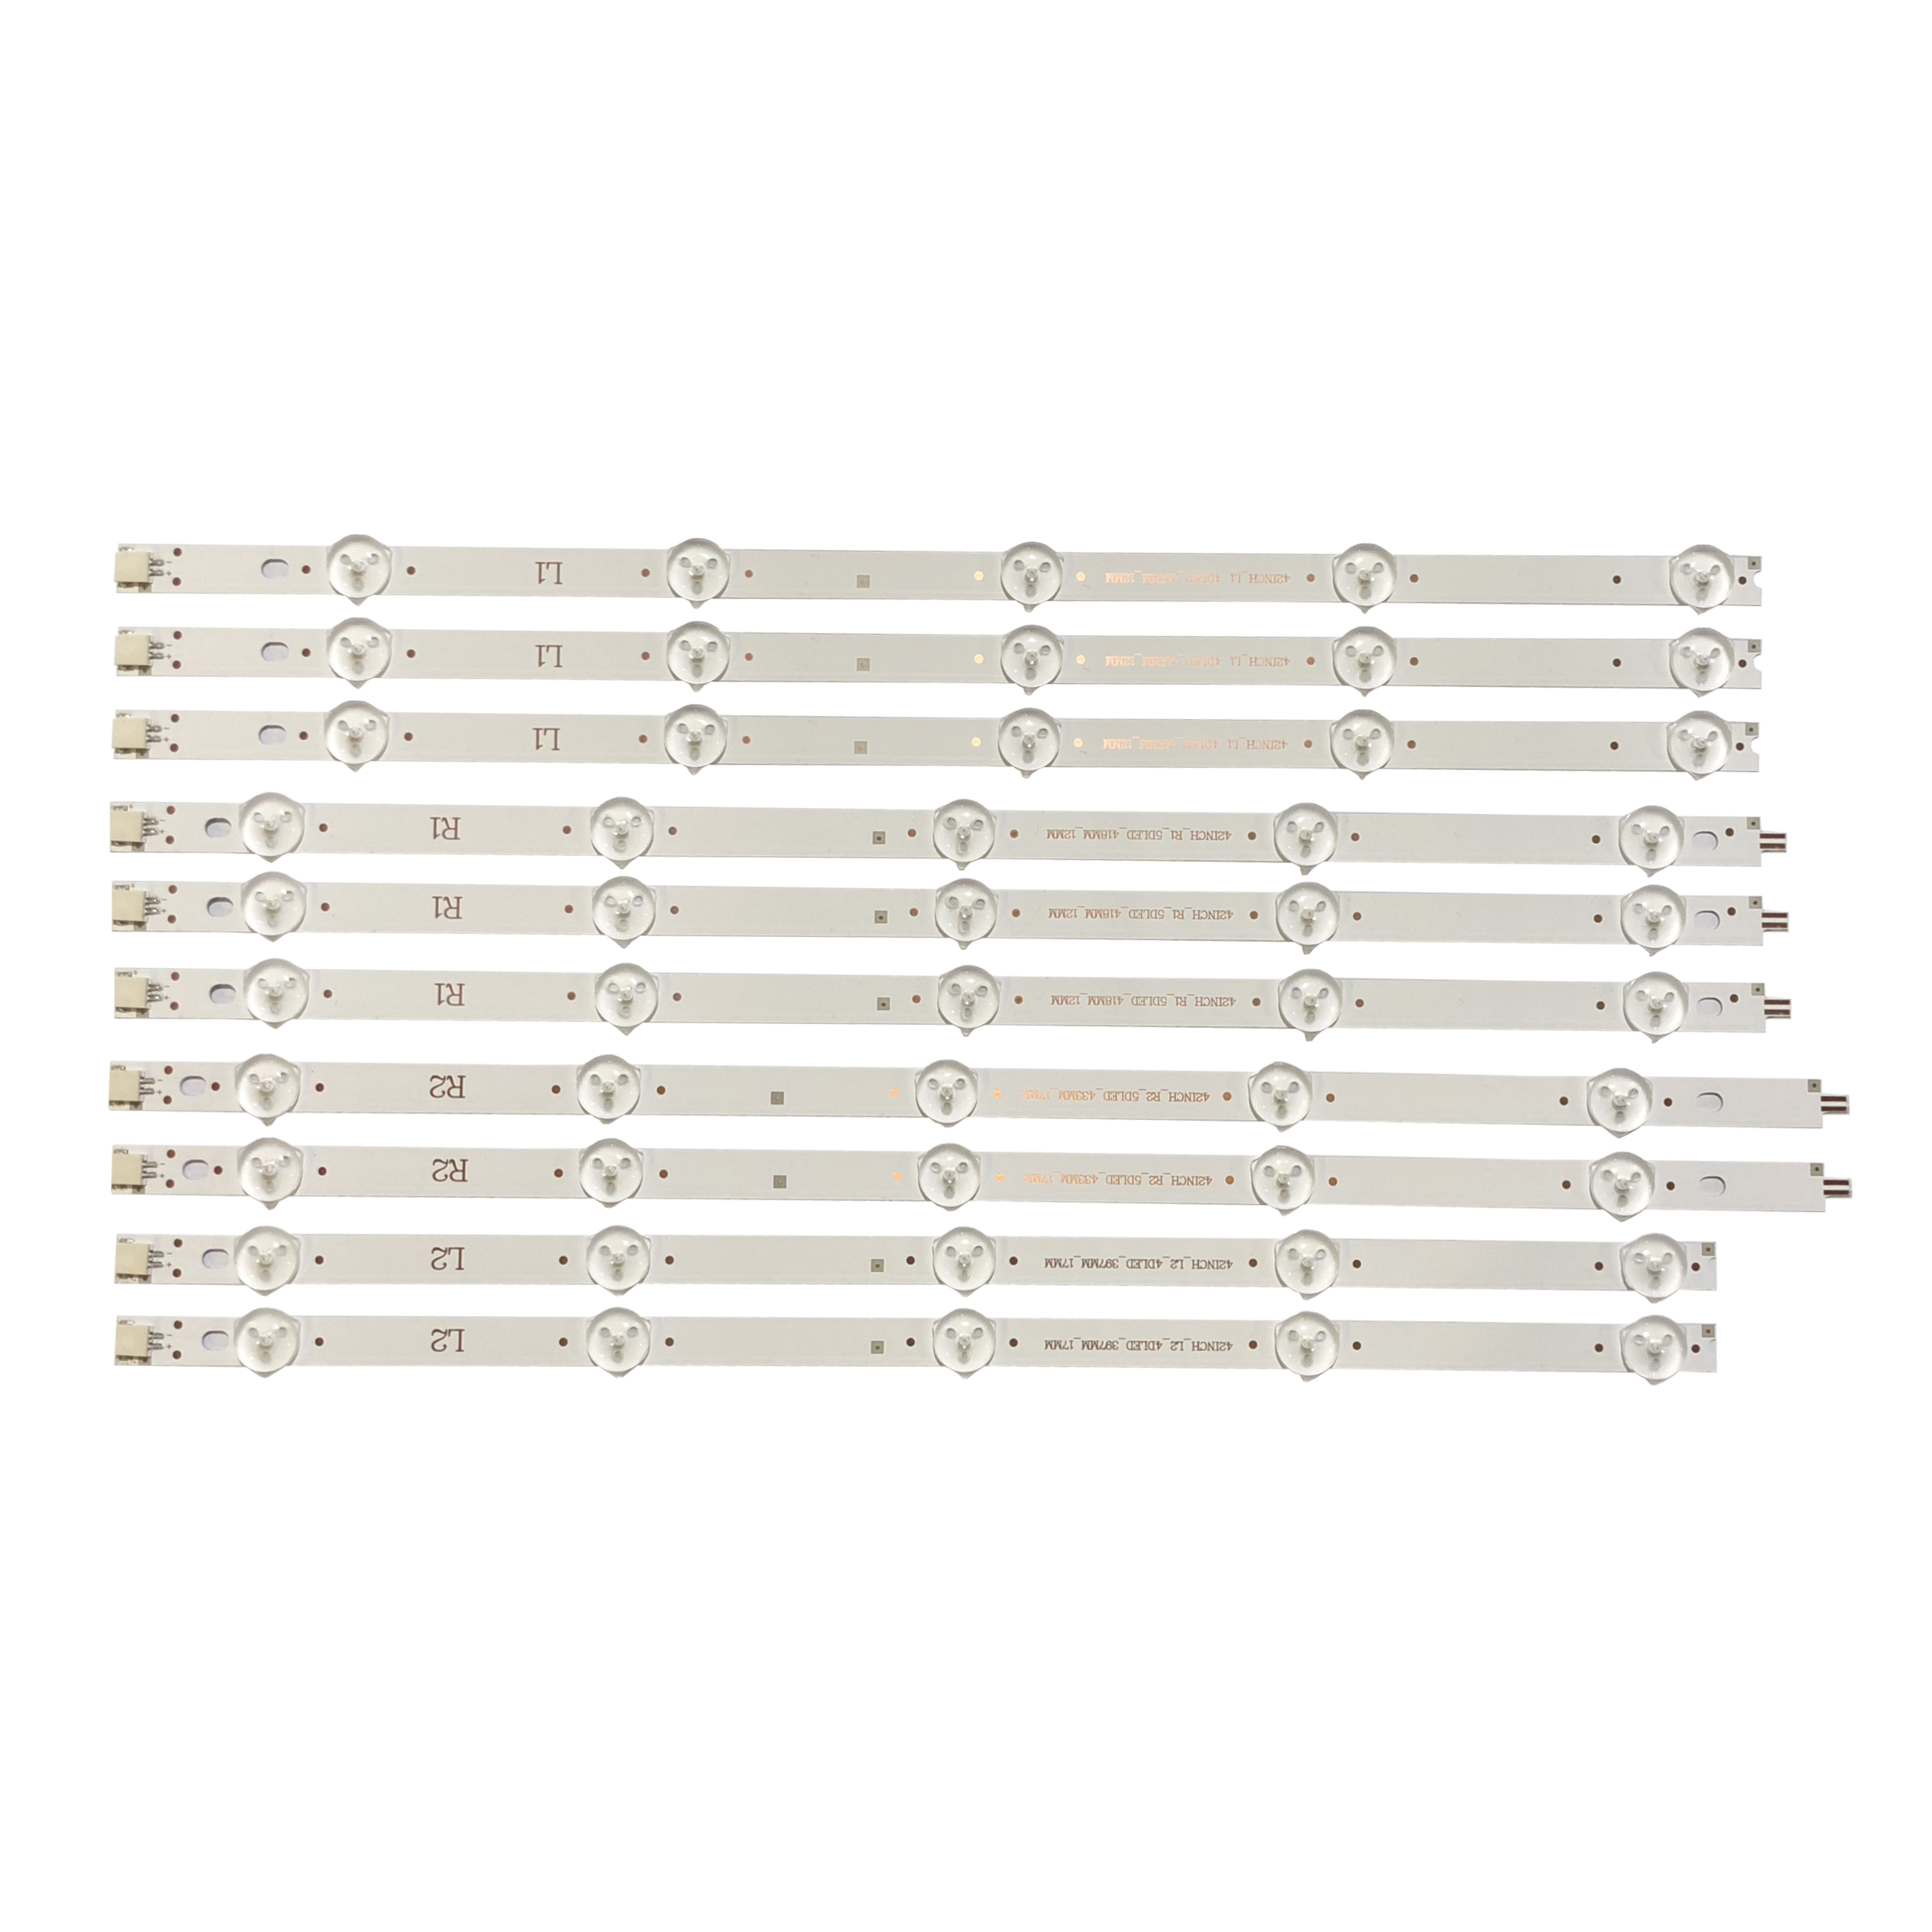 Computer & Office Well-Educated New Kit 10 Pcs R1 L1 R2 L2 Led Strip Perfect Replacement For Lc420due 42ln5400 6916l-1385a 6916l-1386a 6916l-1387a 6916l-1388a